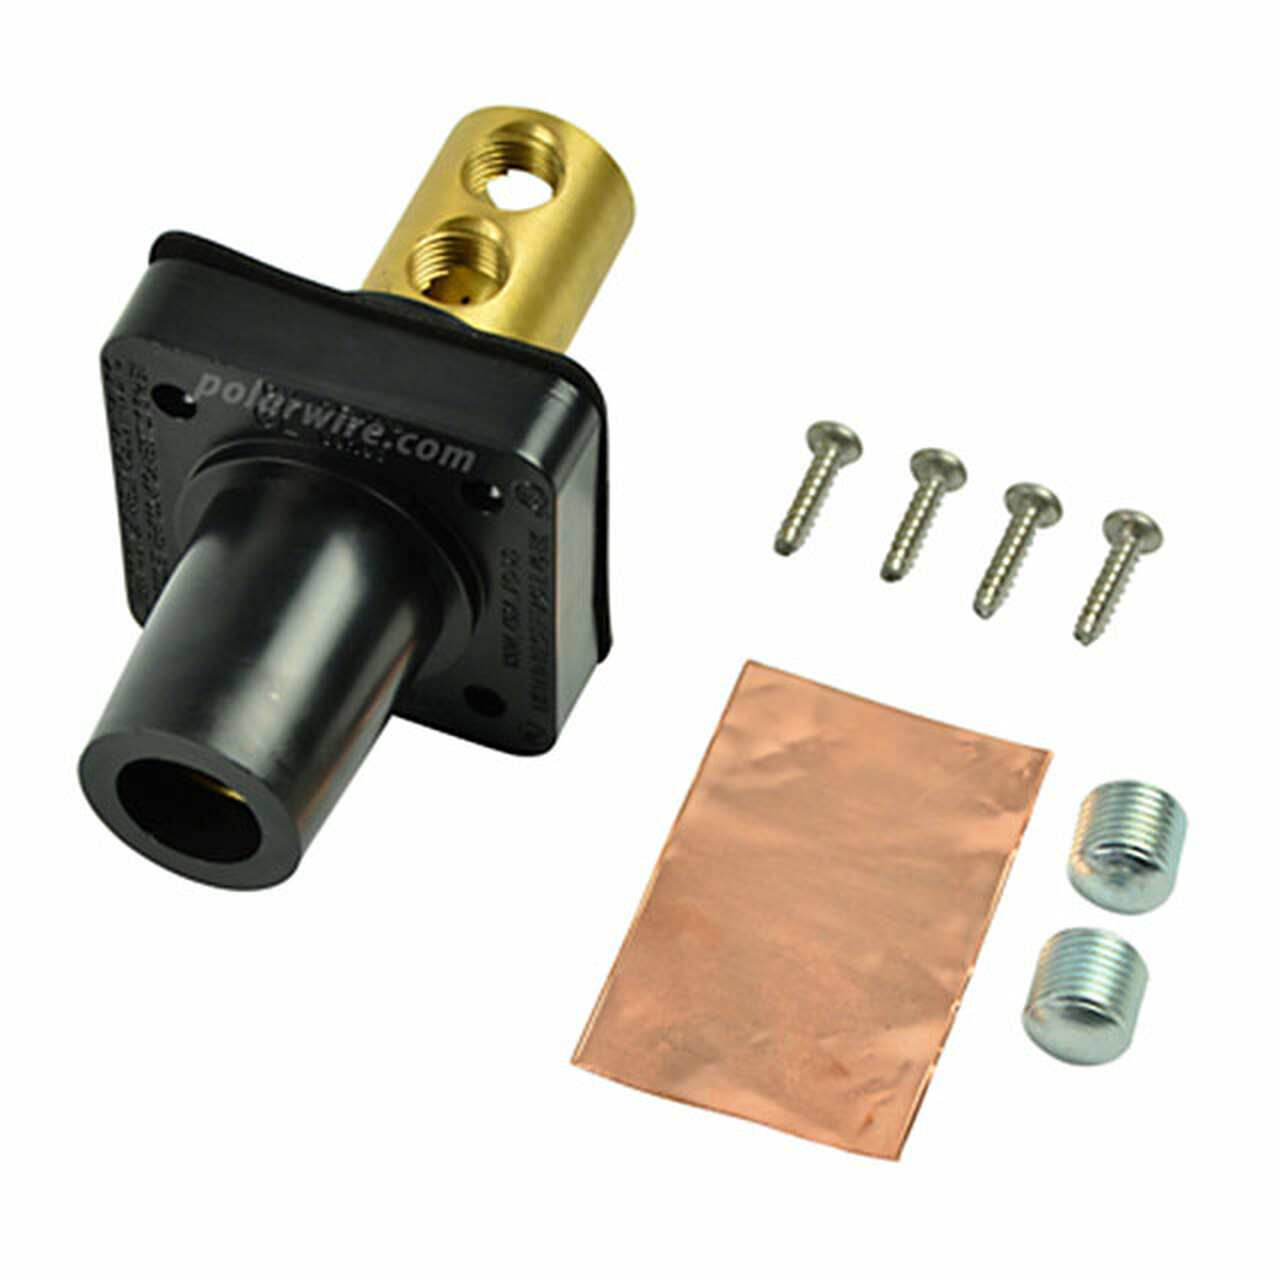 Marinco black 400A CL 16 Series female single pin panel mount cam lock connector with set screw for 2-2/0 AWG cable